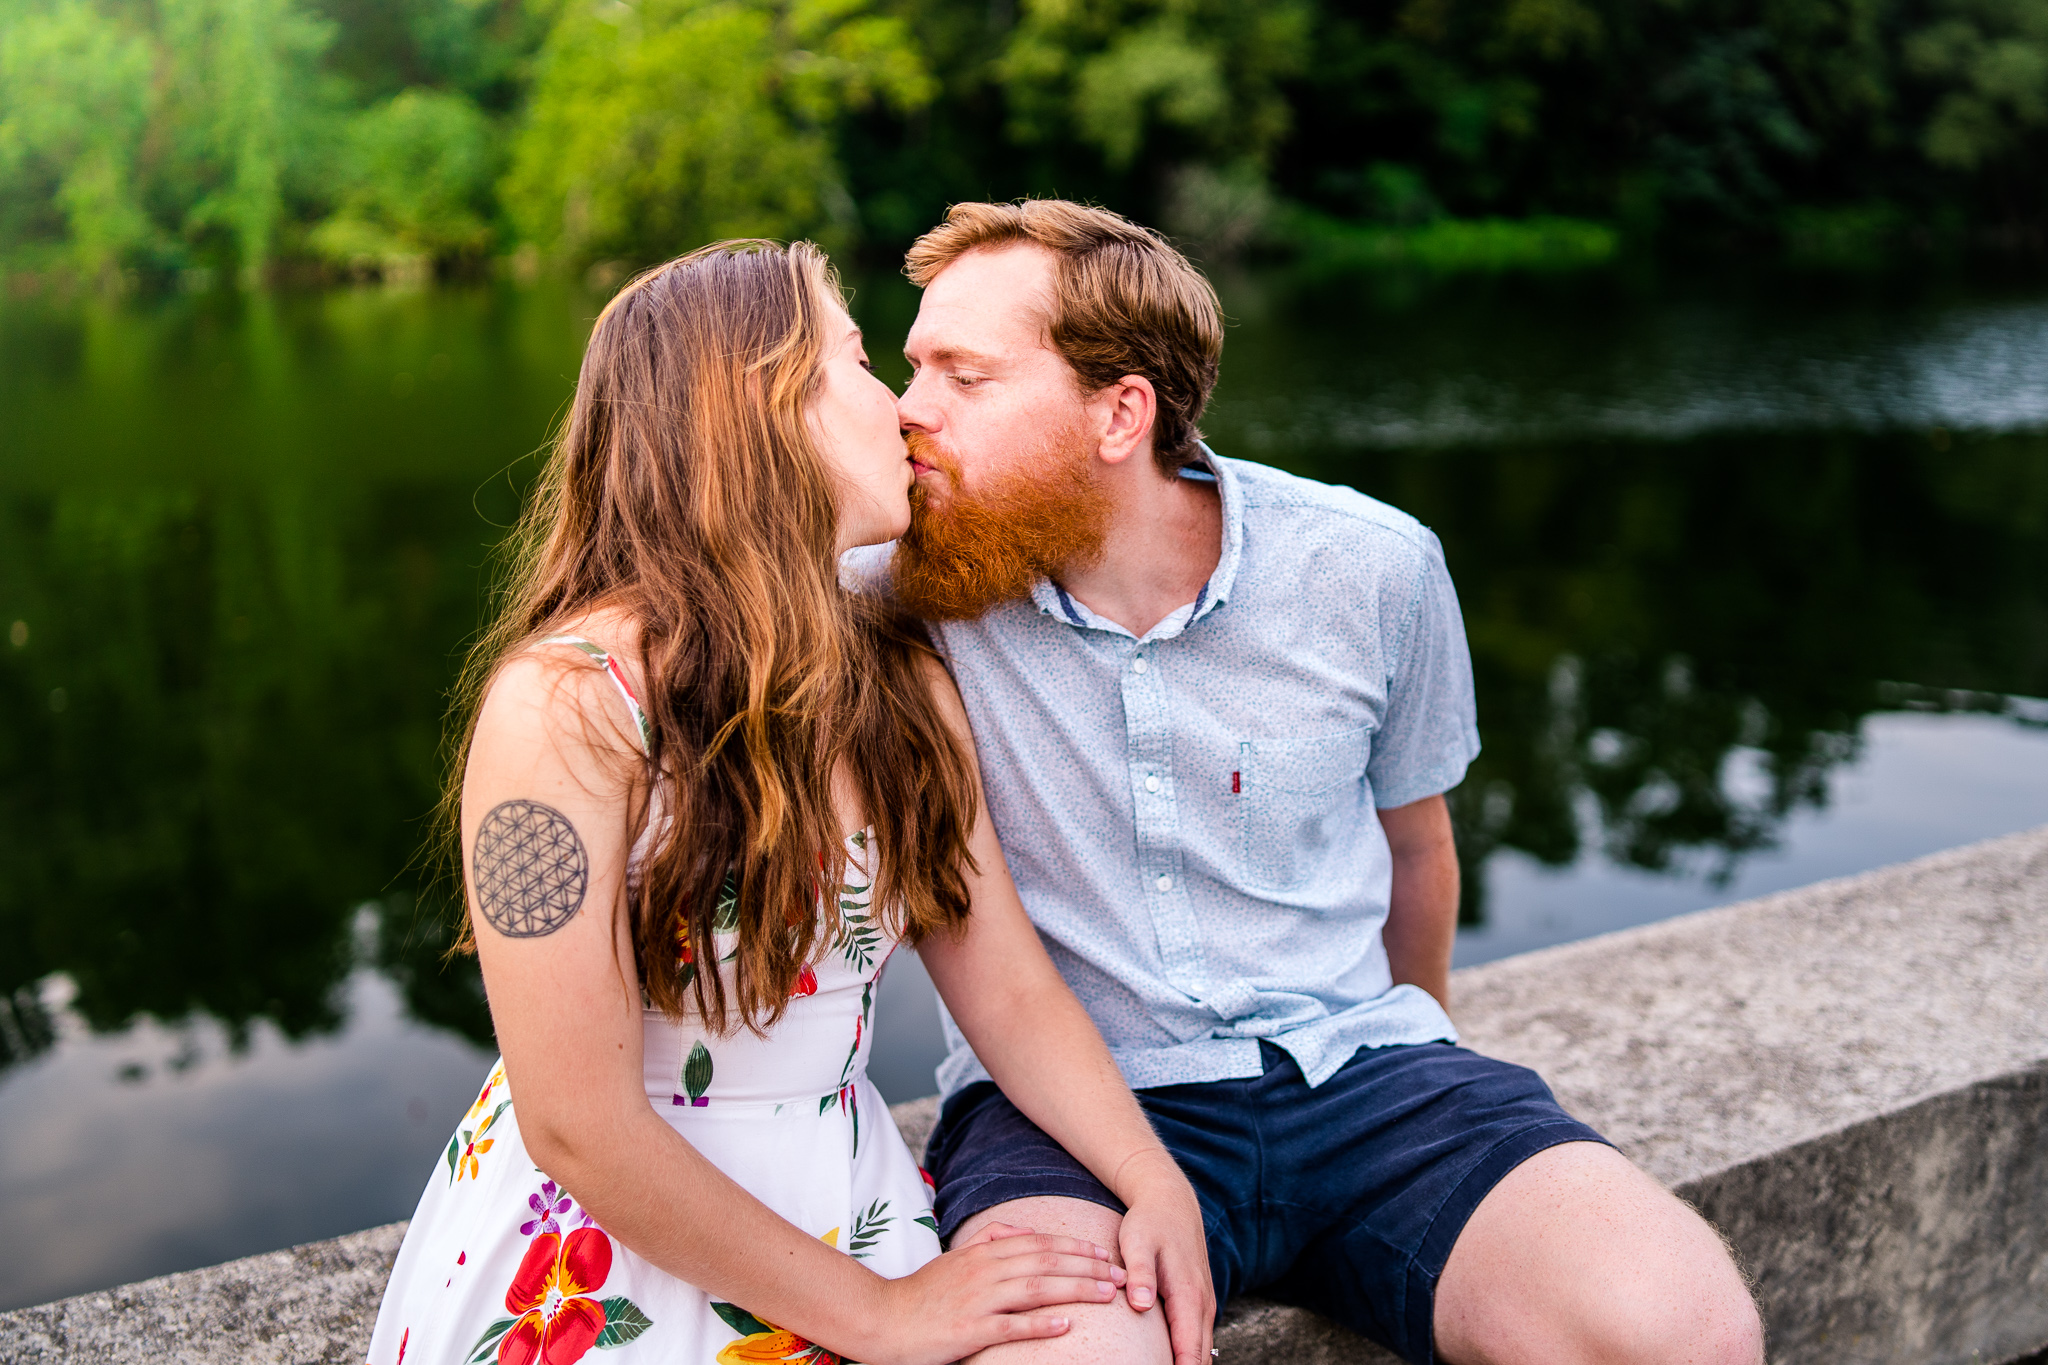 An engaged couple shares a kiss by the water during their summer sunset engagement session in Historic Occoquan, Northern Virginia